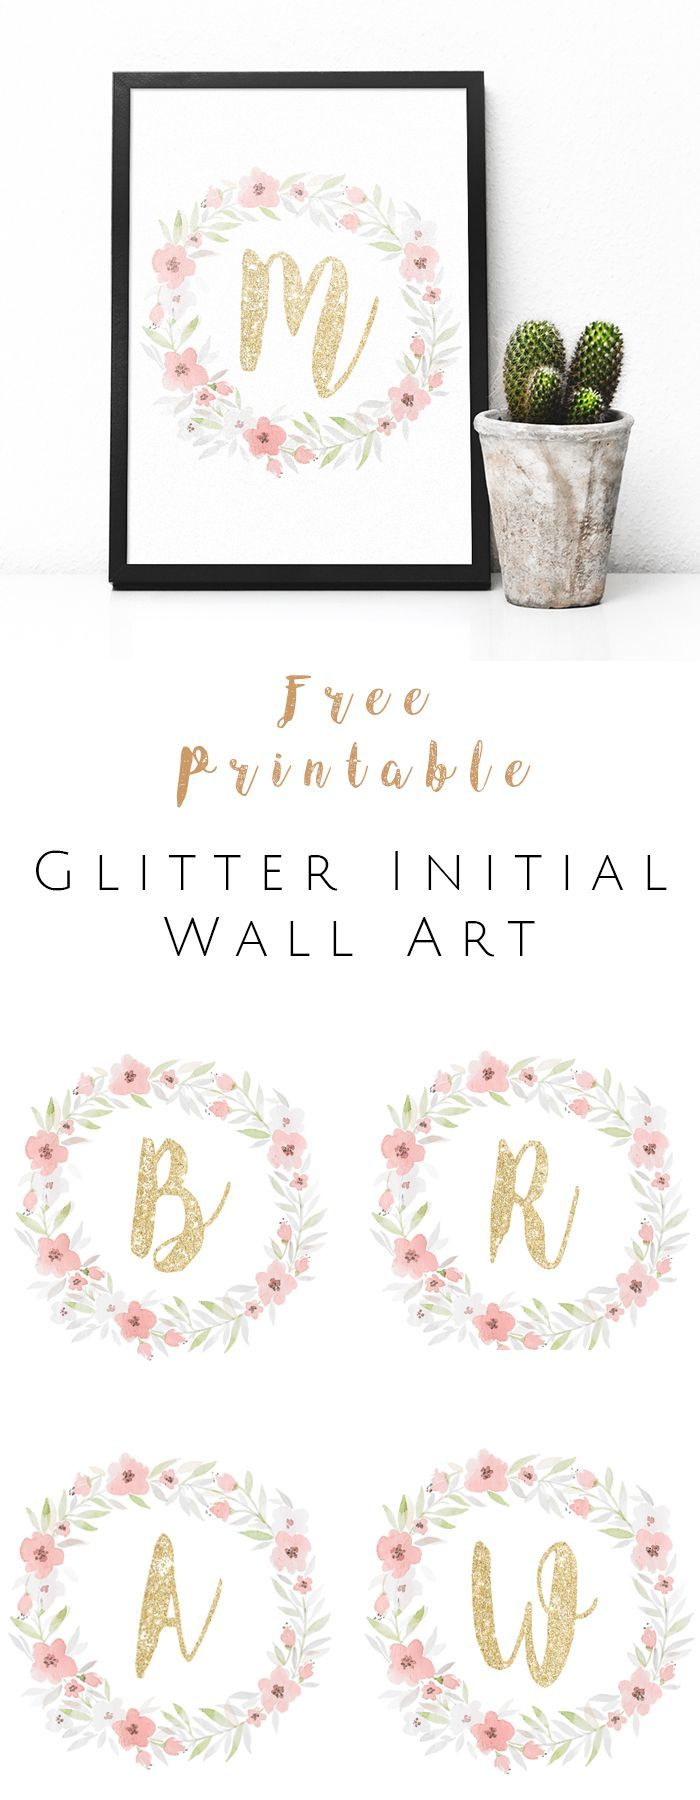 Diy Crafts Ideas : FREE Printable Glitter Initial Wall Art – Watercolor and gold glitter monogram. … | DIY Loop | Leading DIY & Craft inspiration Magazine & Database